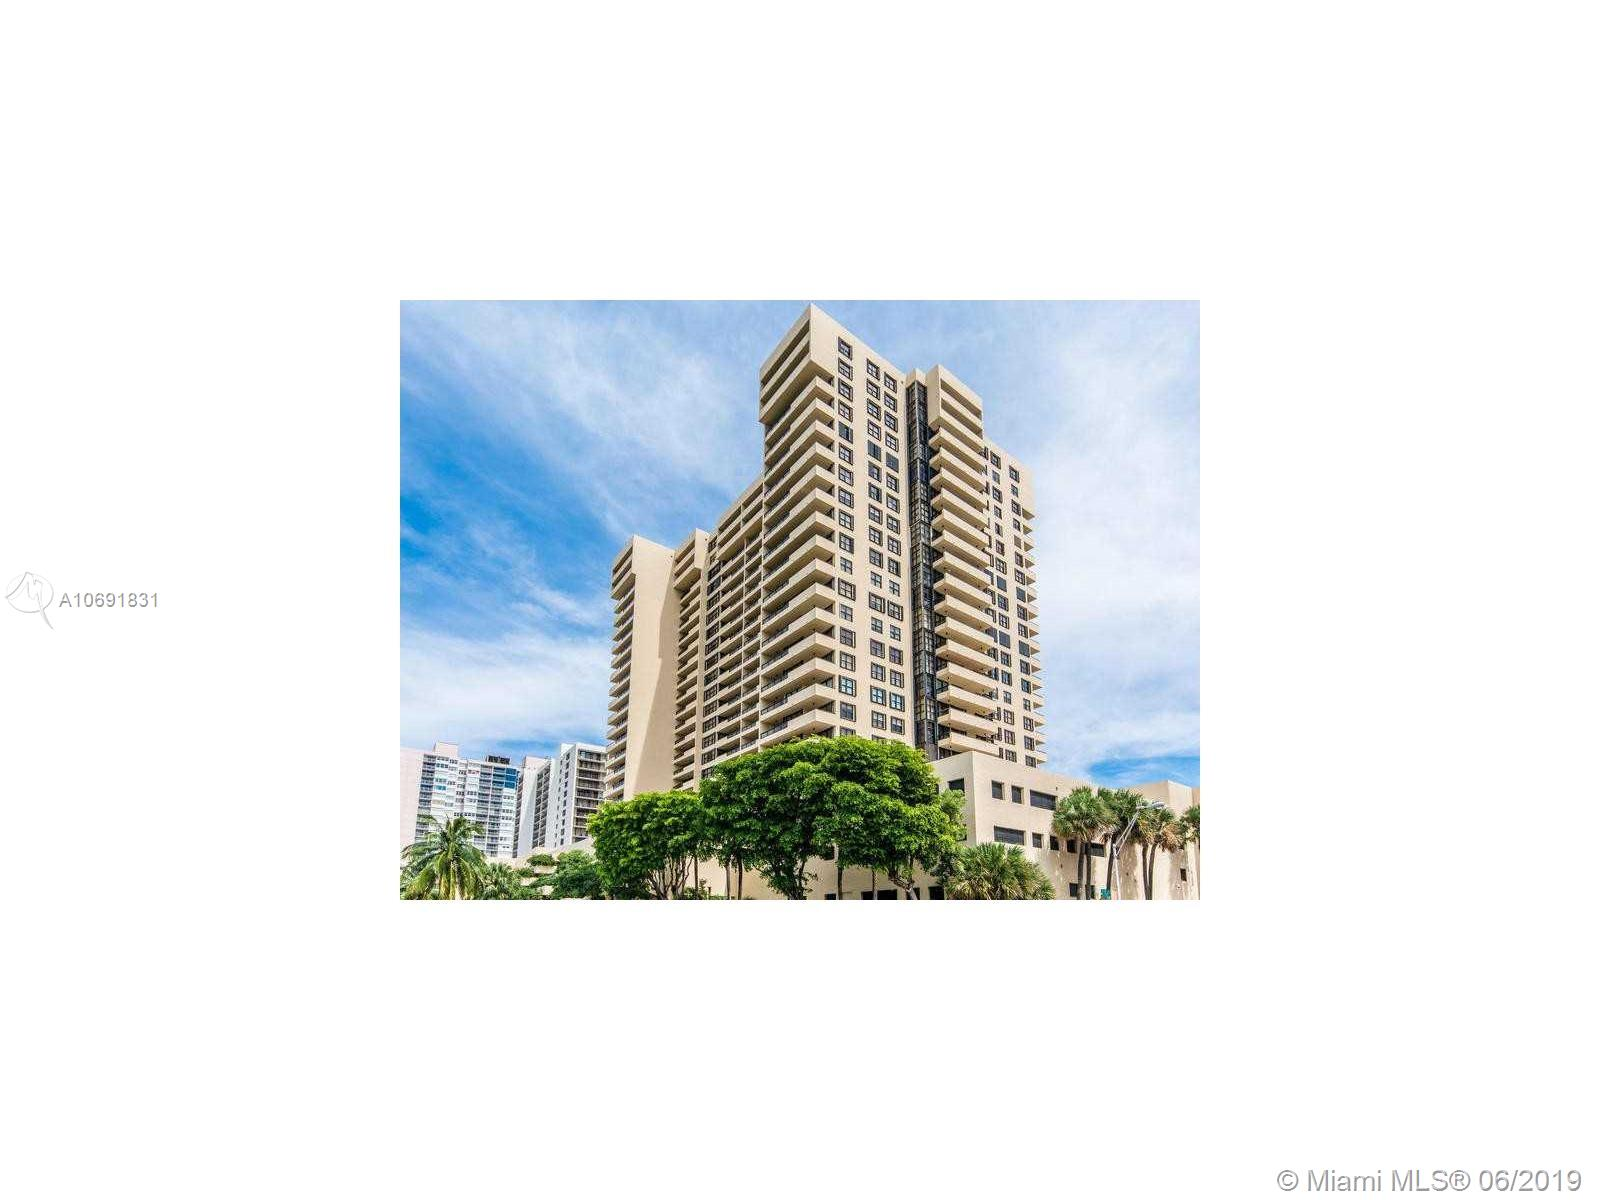 full remodeled unit ,with full  beautiful ocean view, in Collins park area,.near Faena Hotel District,walk to Lincoln road, full Gym,,Pool, great building